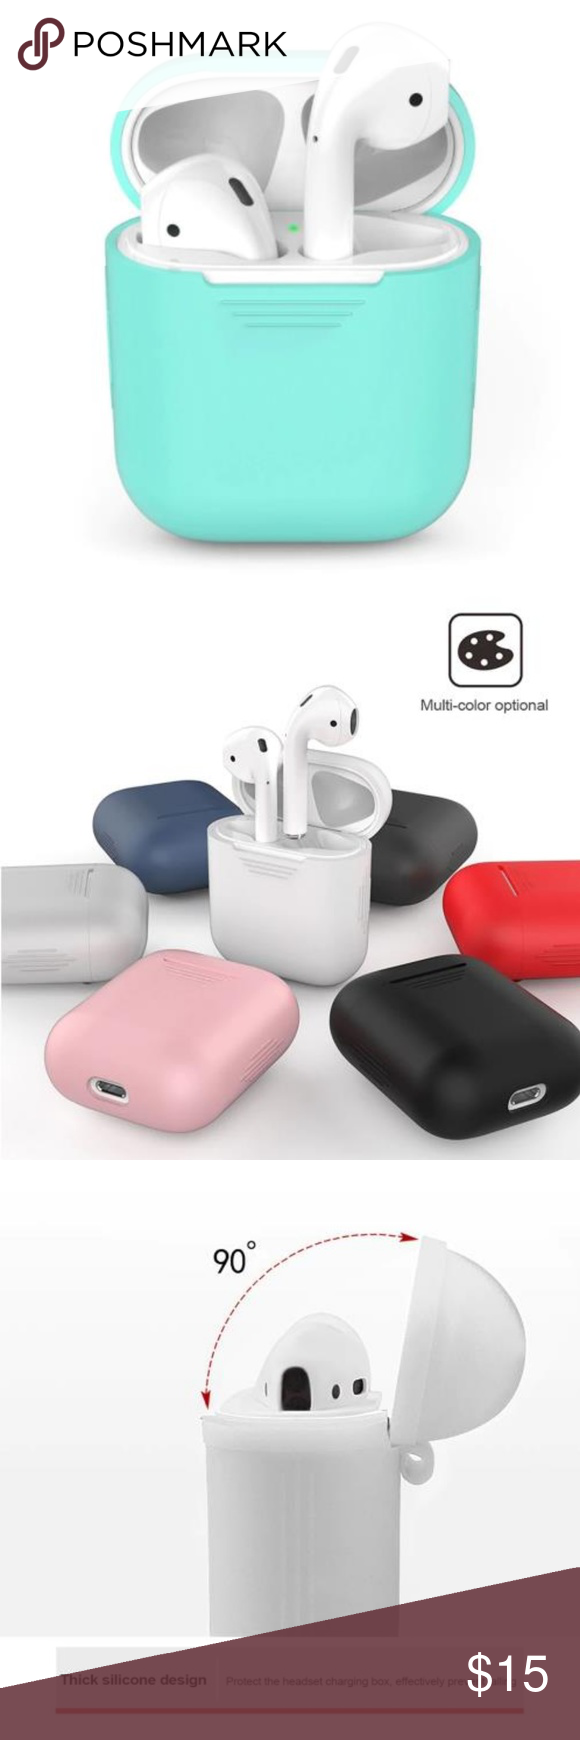 New Apple Airpods Soft Protective Case Boutique Clothes